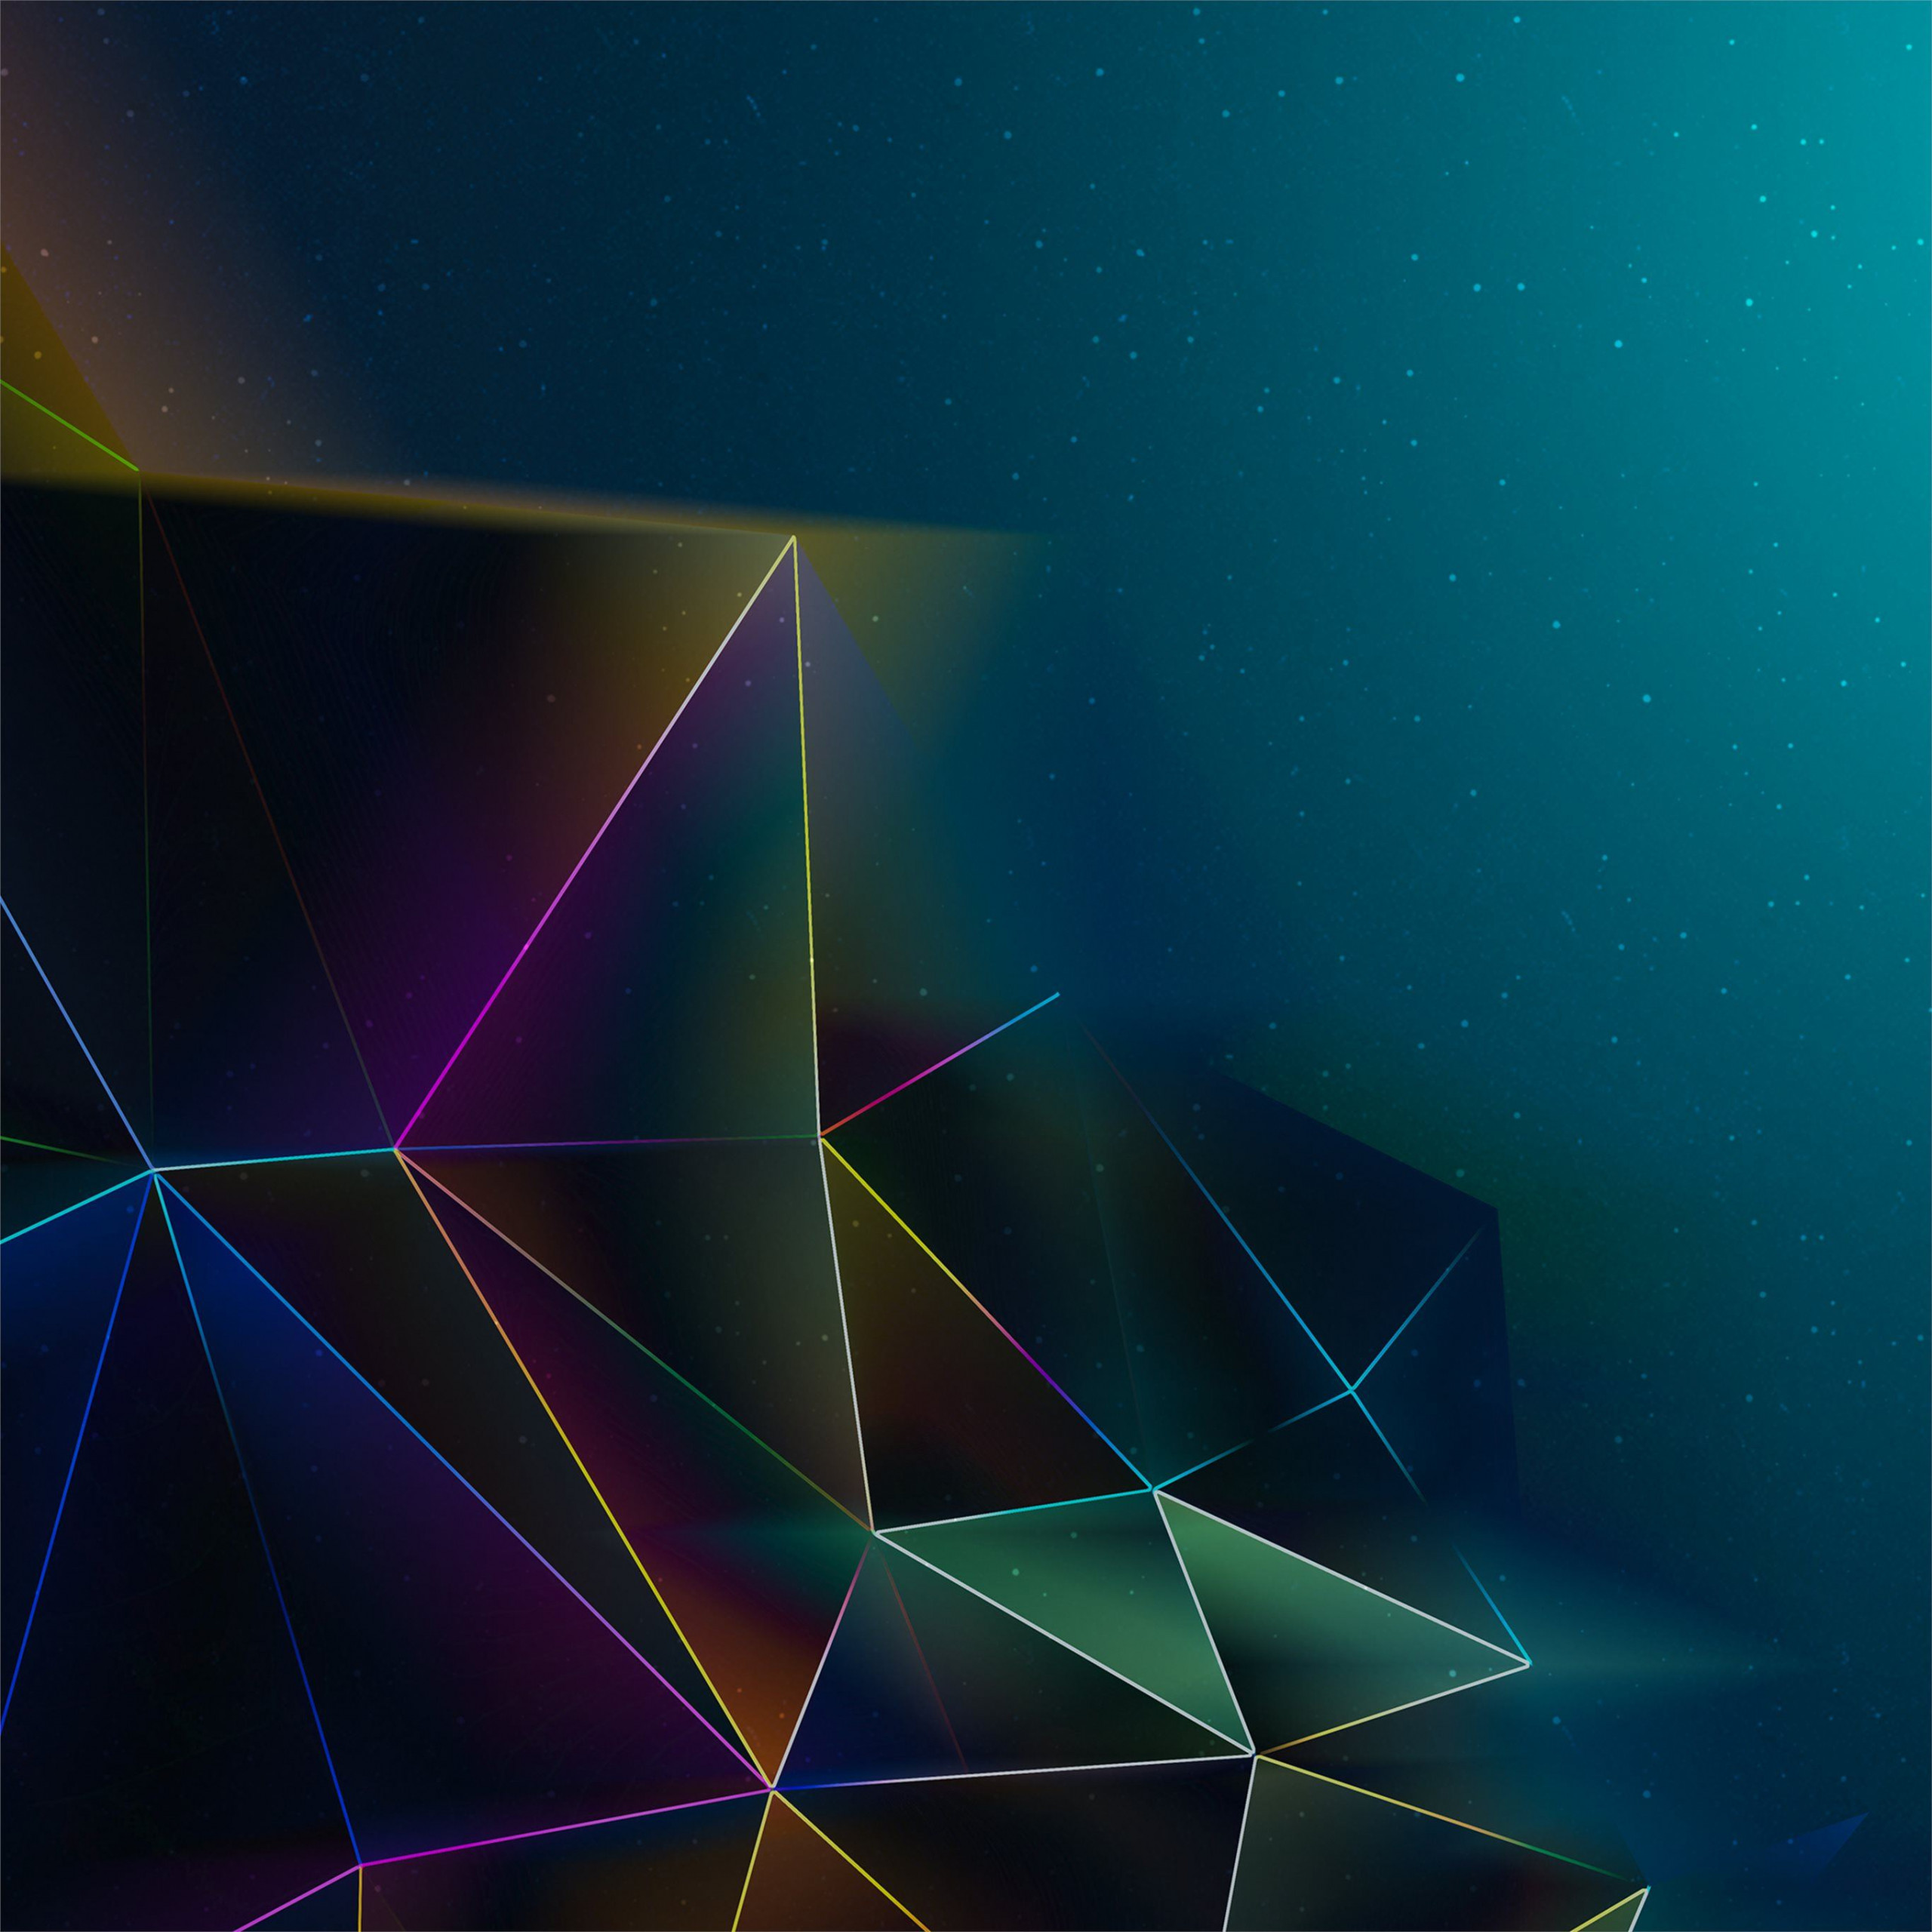 abstract triangle wallpaper 4k